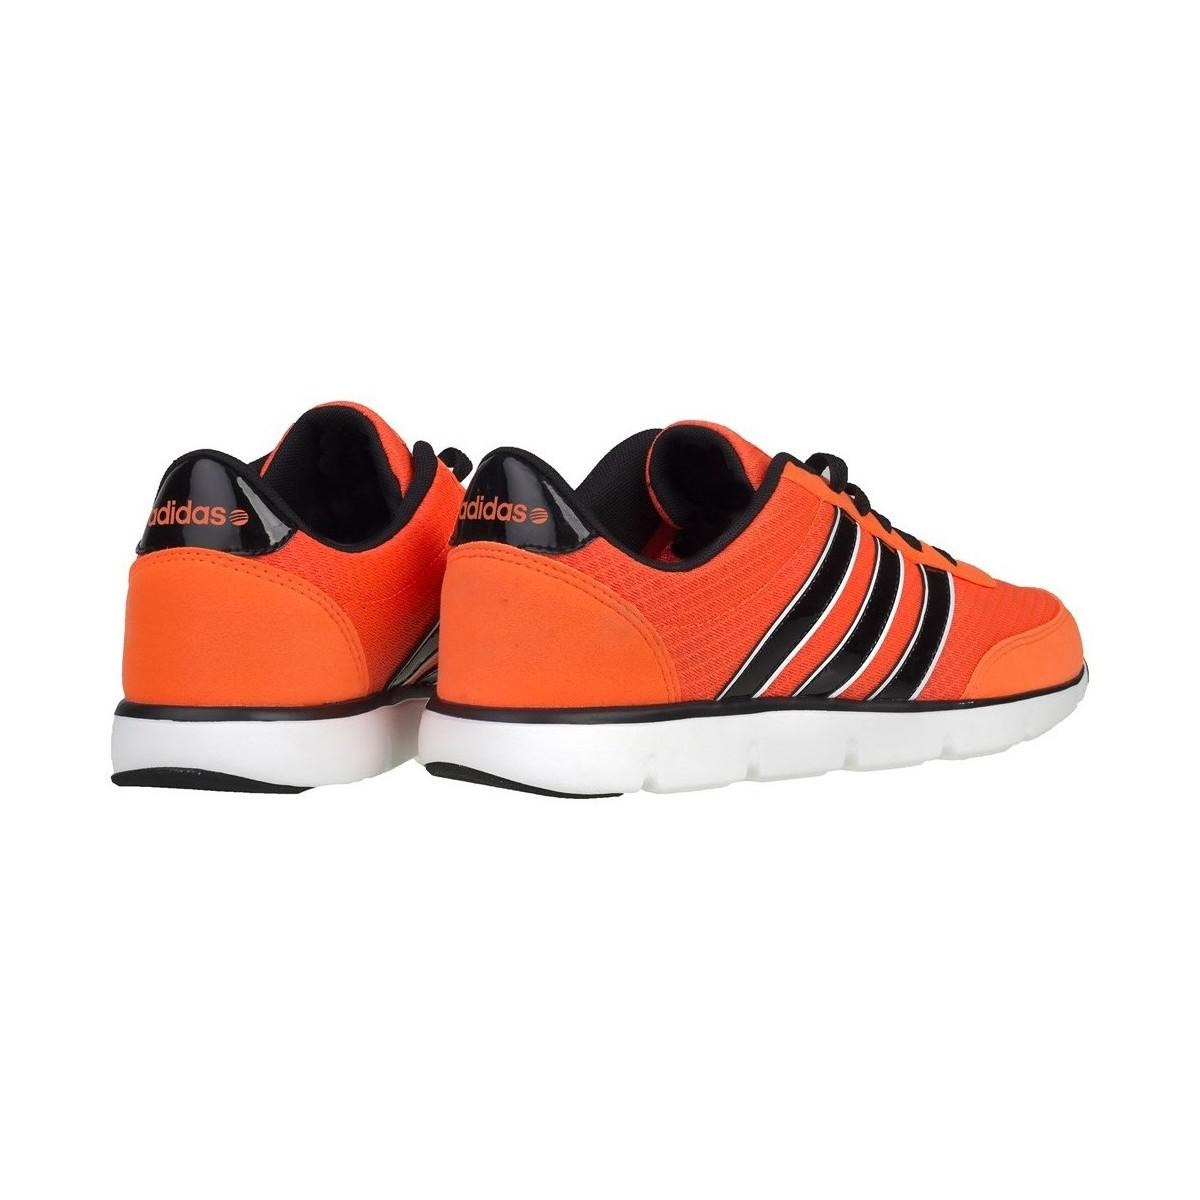 size 40 698e6 0a671 adidas Neo Ultra Racer Men s Shoes (trainers) In Orange in Orange ...